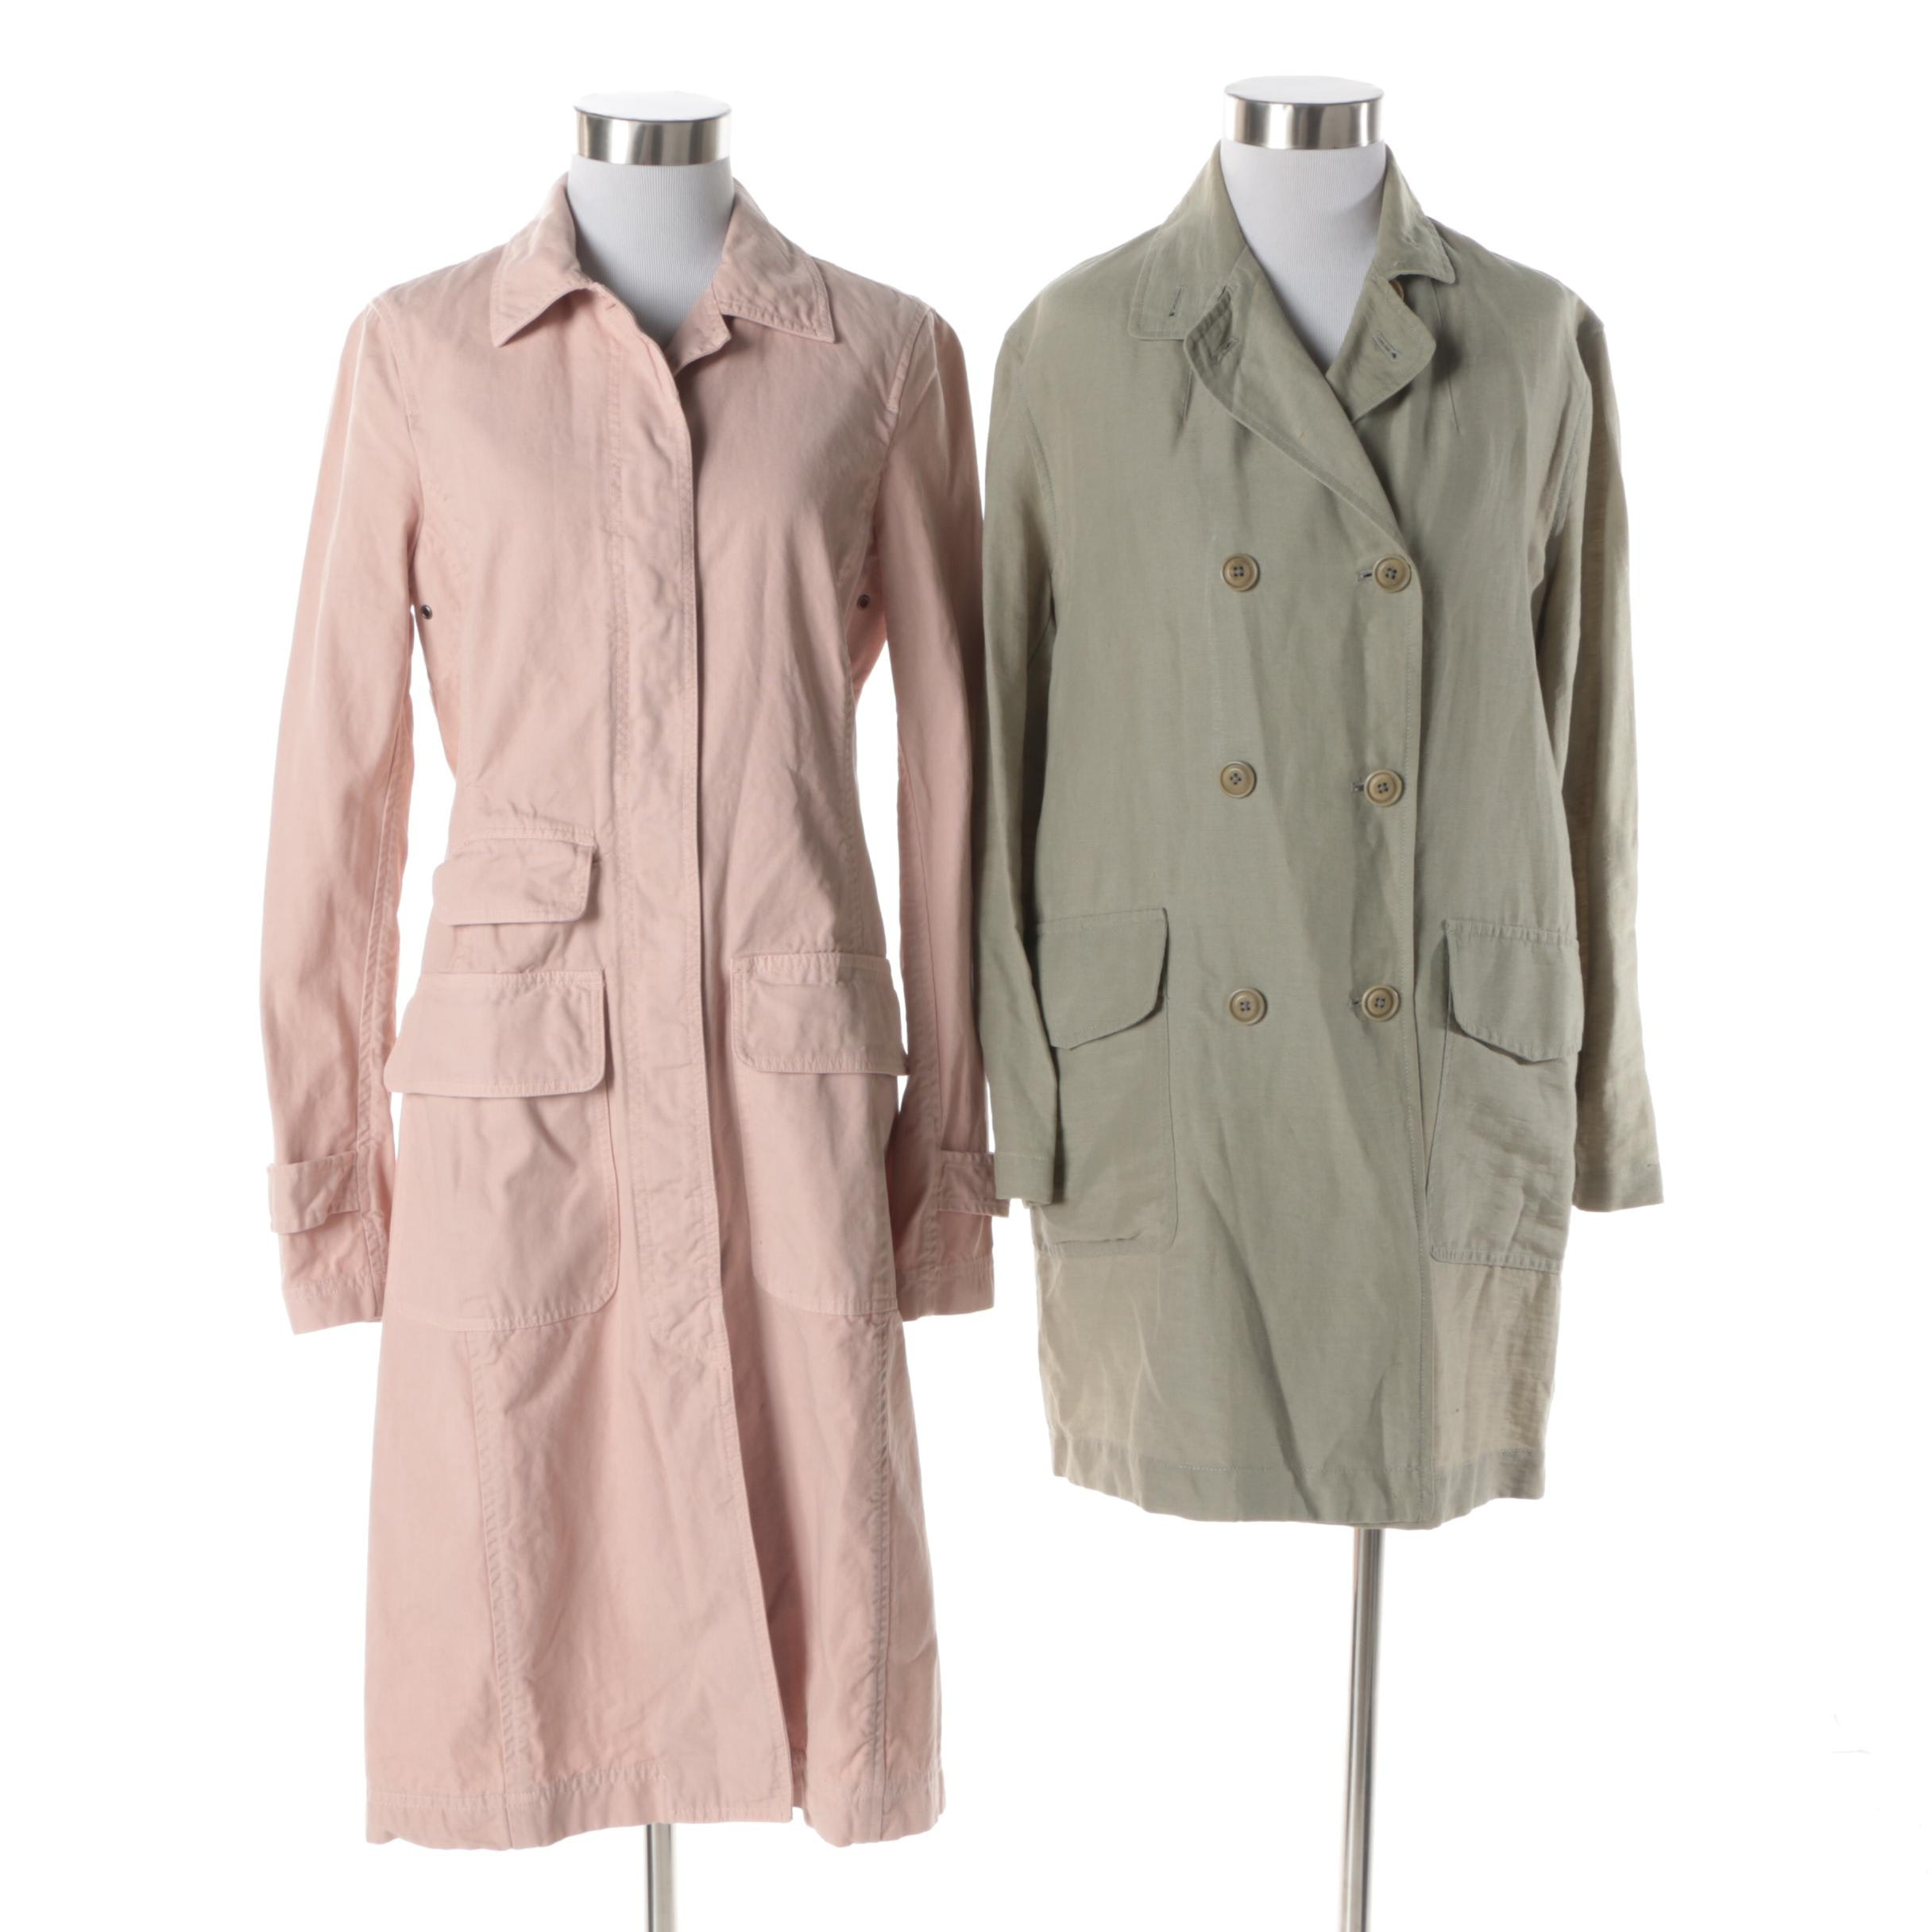 Women's DKNY Classic and Nili Lotan Jackets